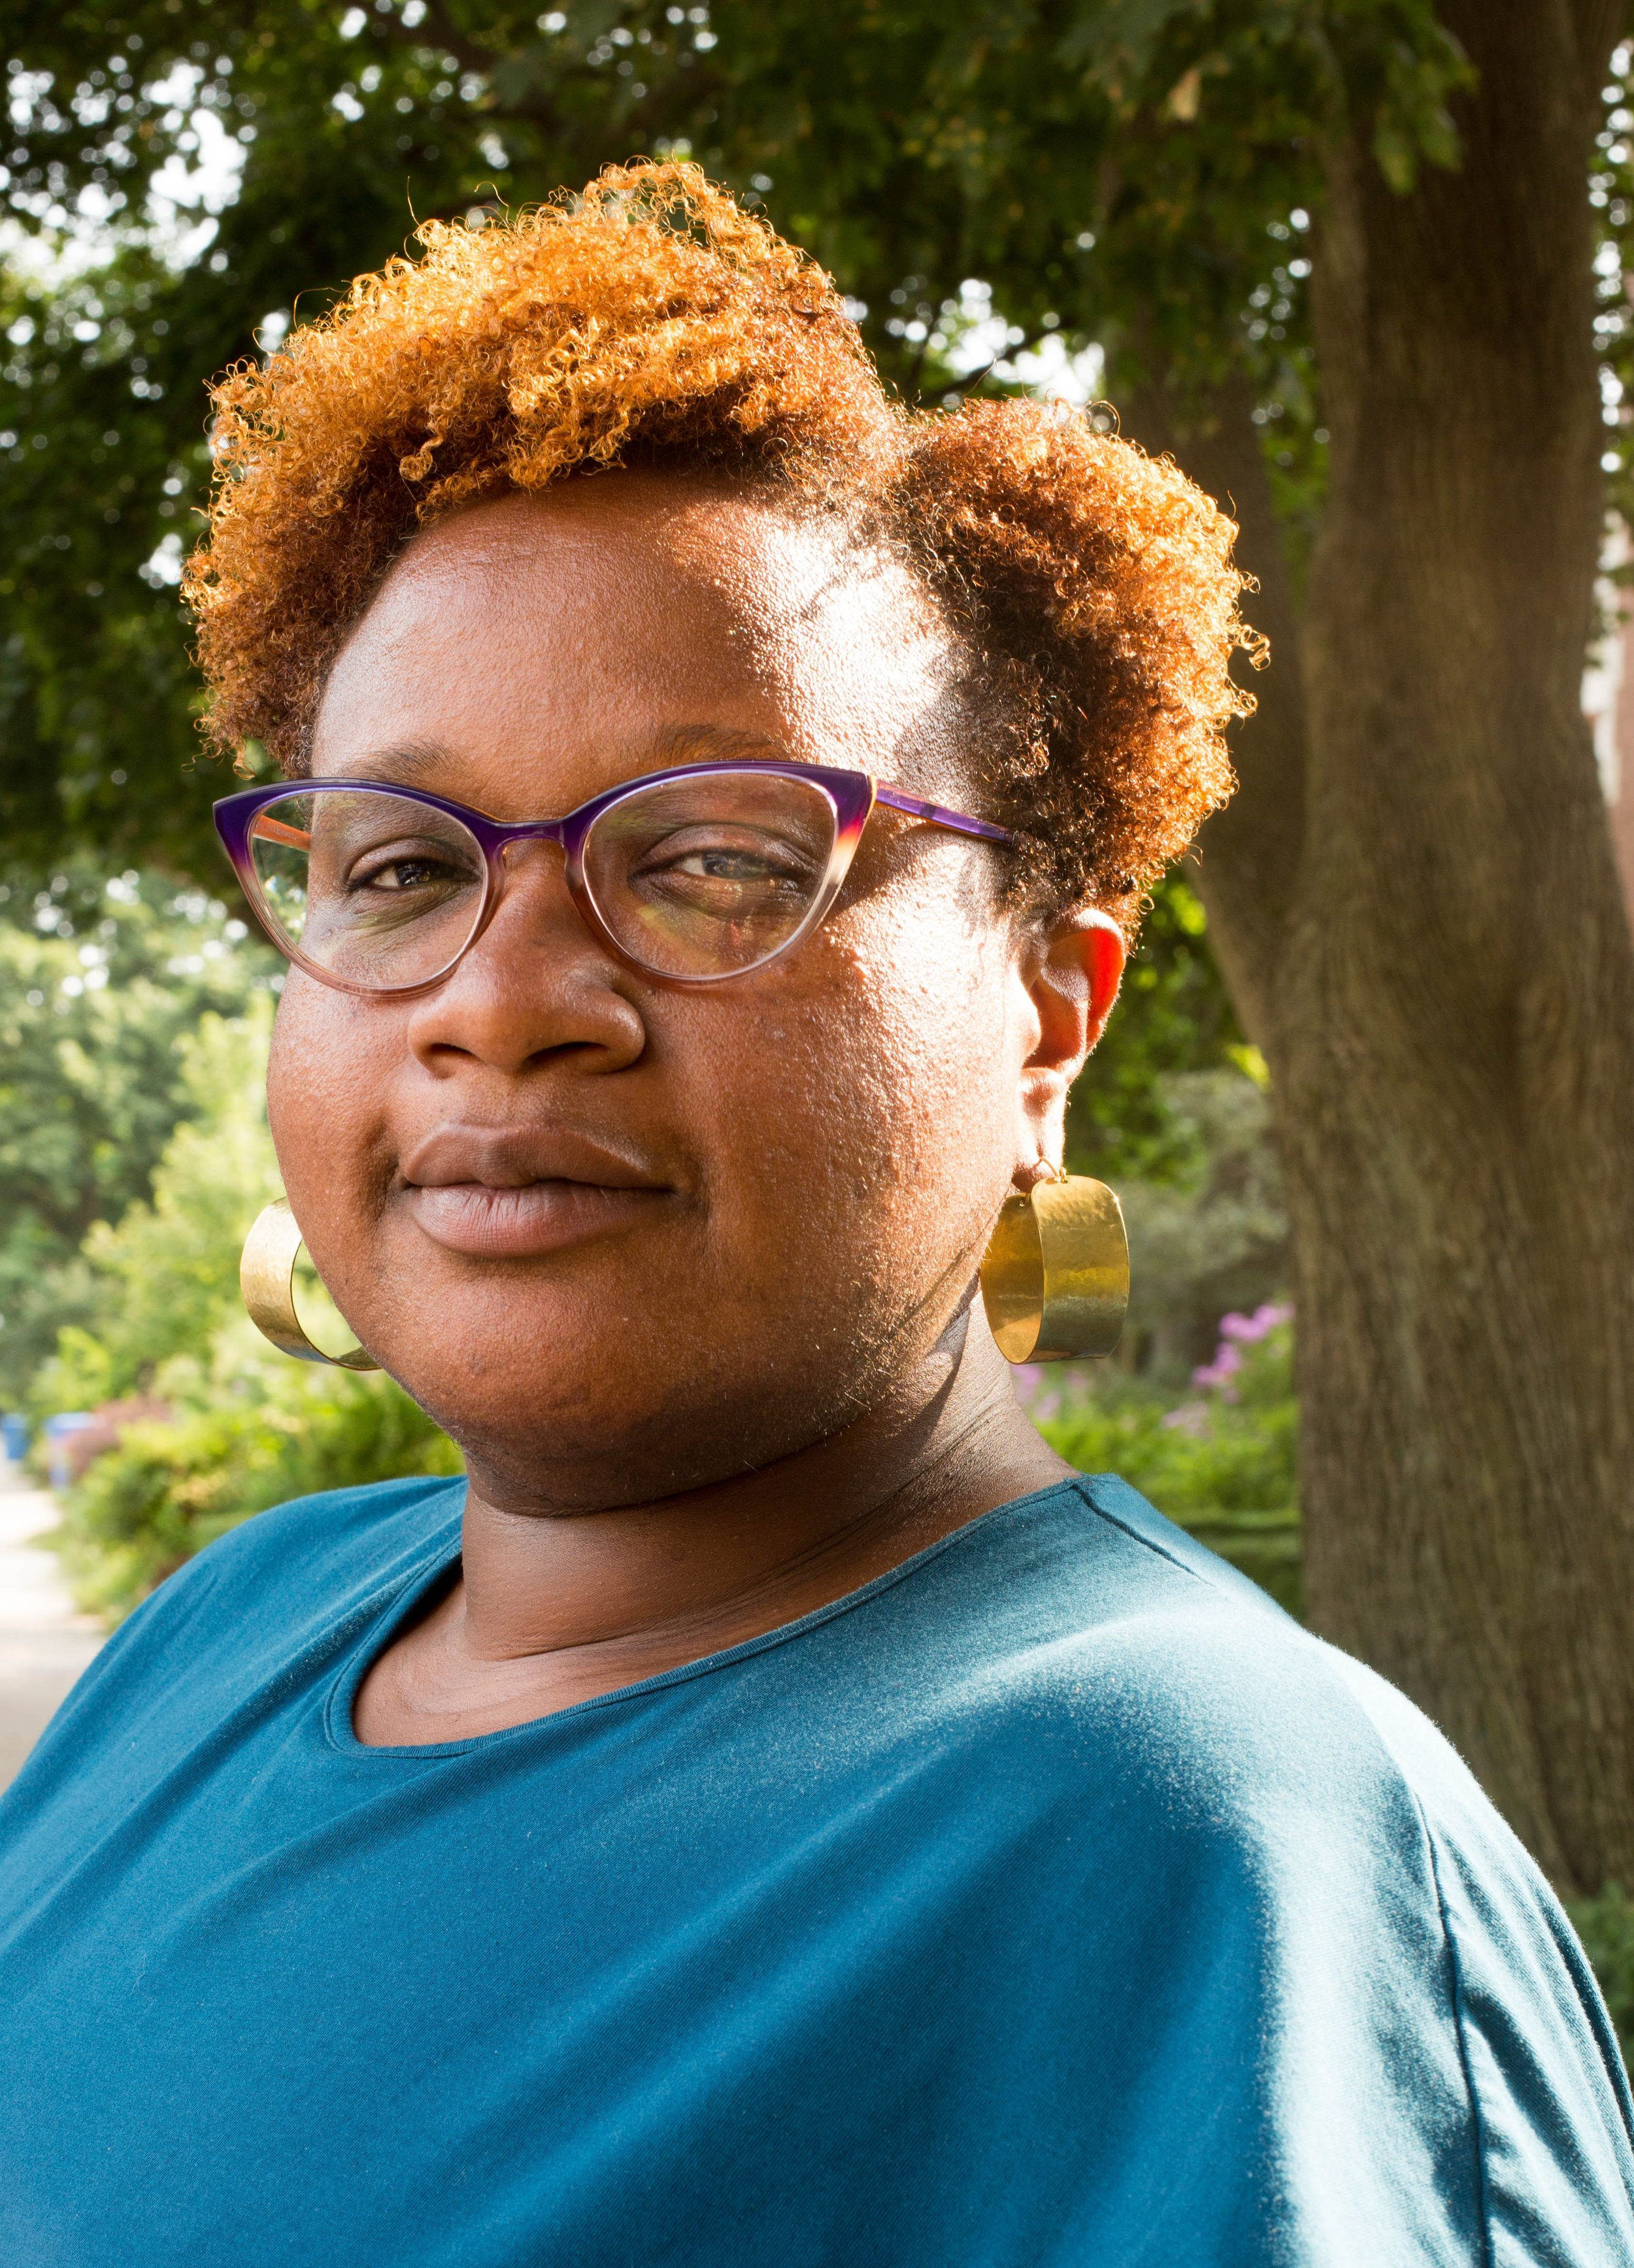 Image: Portrait of Erin Glasco. She is wearing a teal dress, copper earrings, and purple glasses, and looks directly at the camera with a slight smile while standing in front of trees and bushes of flowers. Photo by Ireashia Bennett.